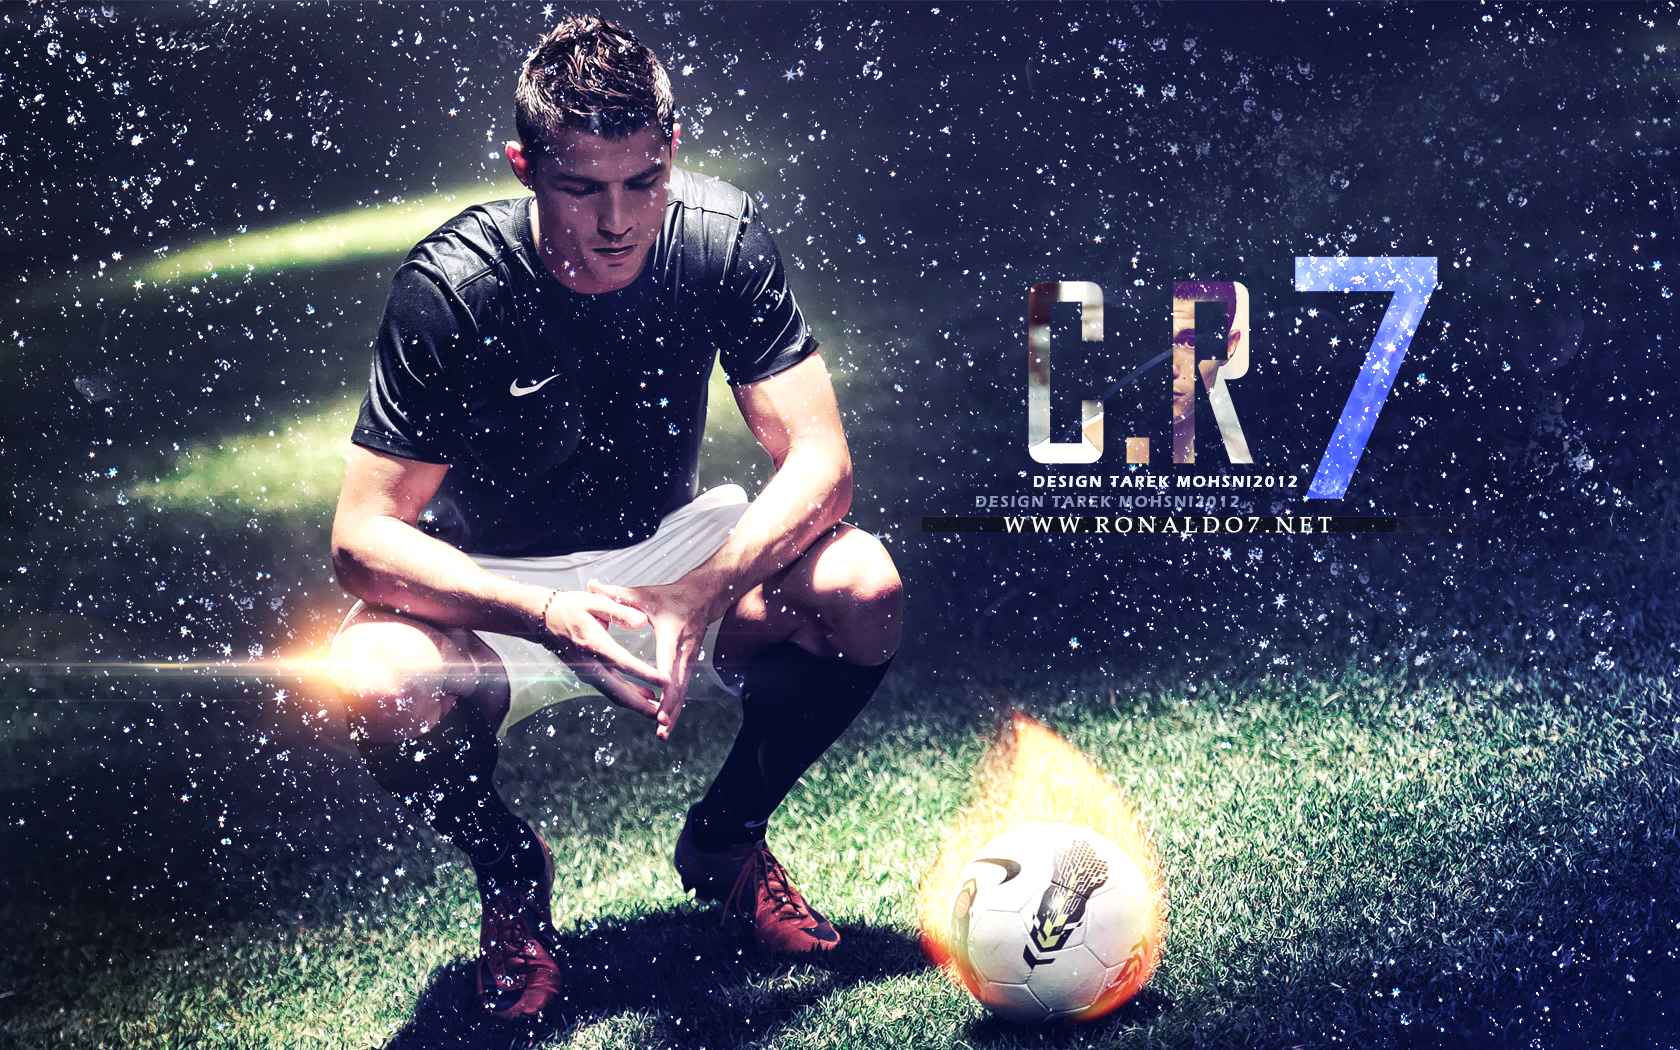 Cristiano Ronaldo Real Madrid Dekstop Desktop Wallpaper